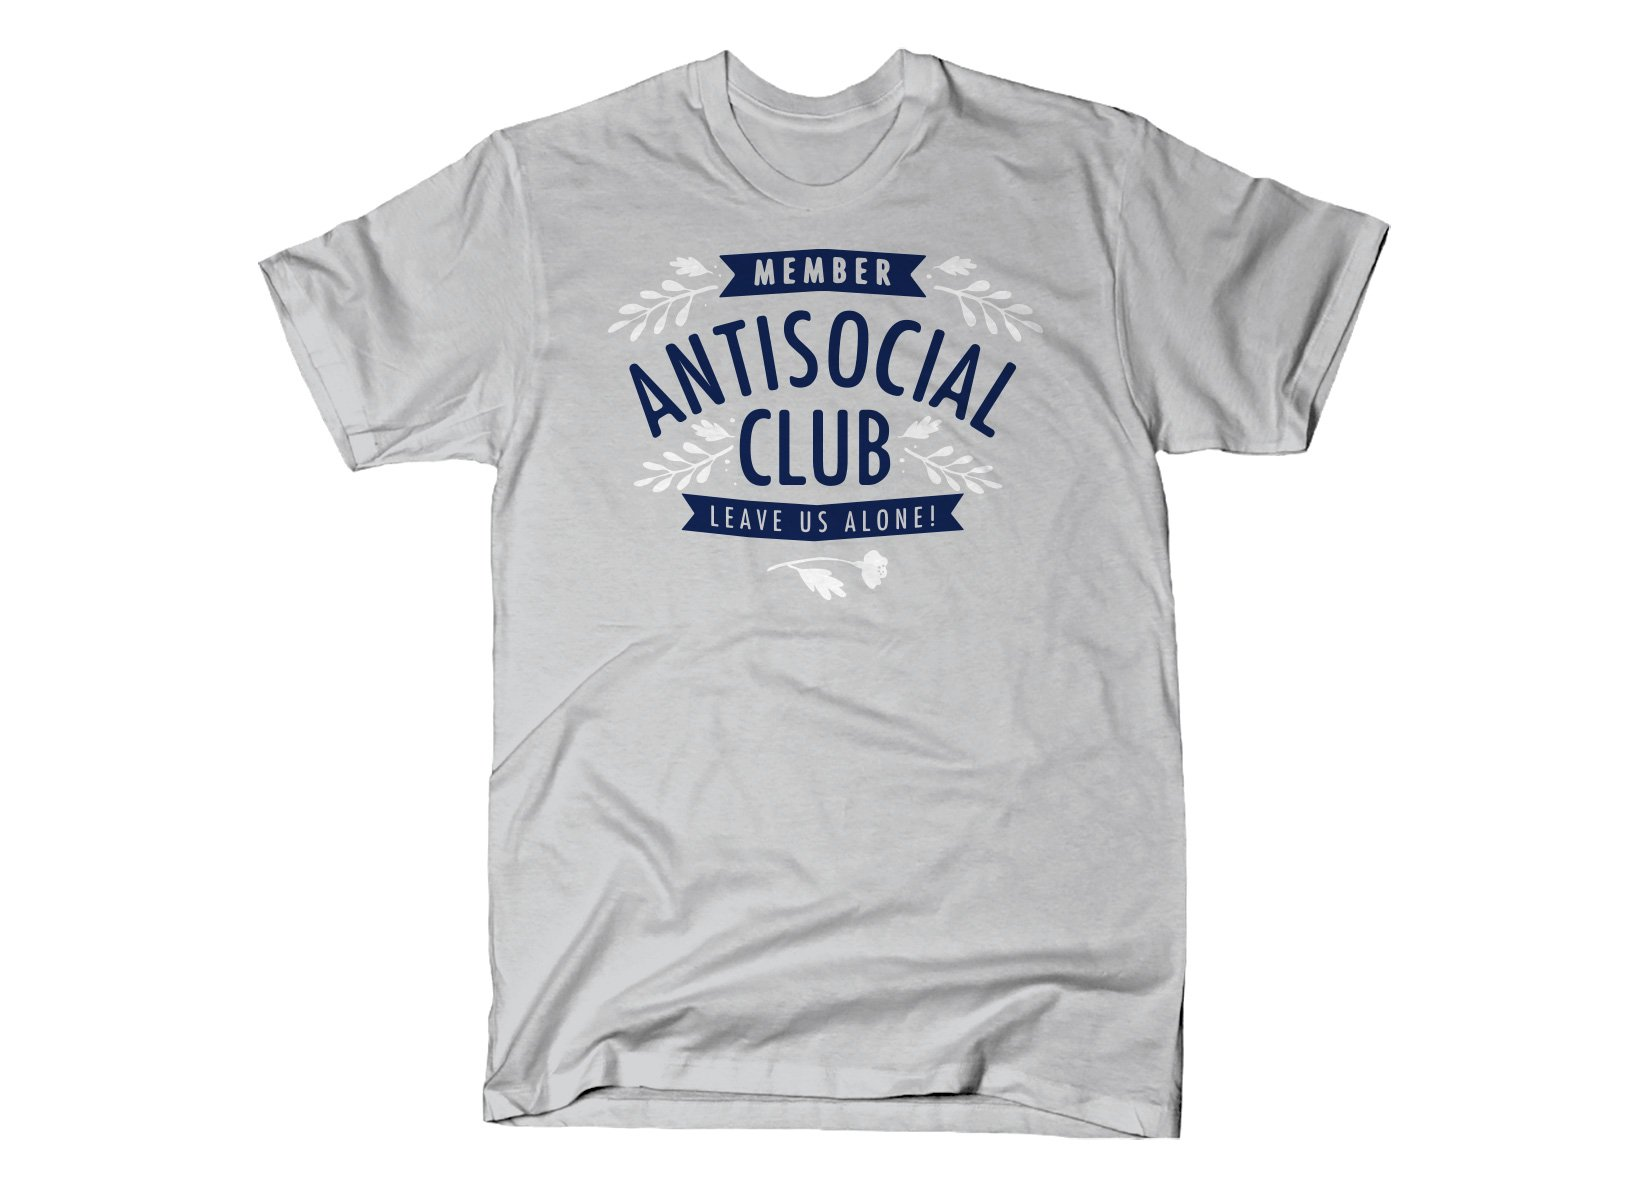 Antisocial Club on Mens T-Shirt